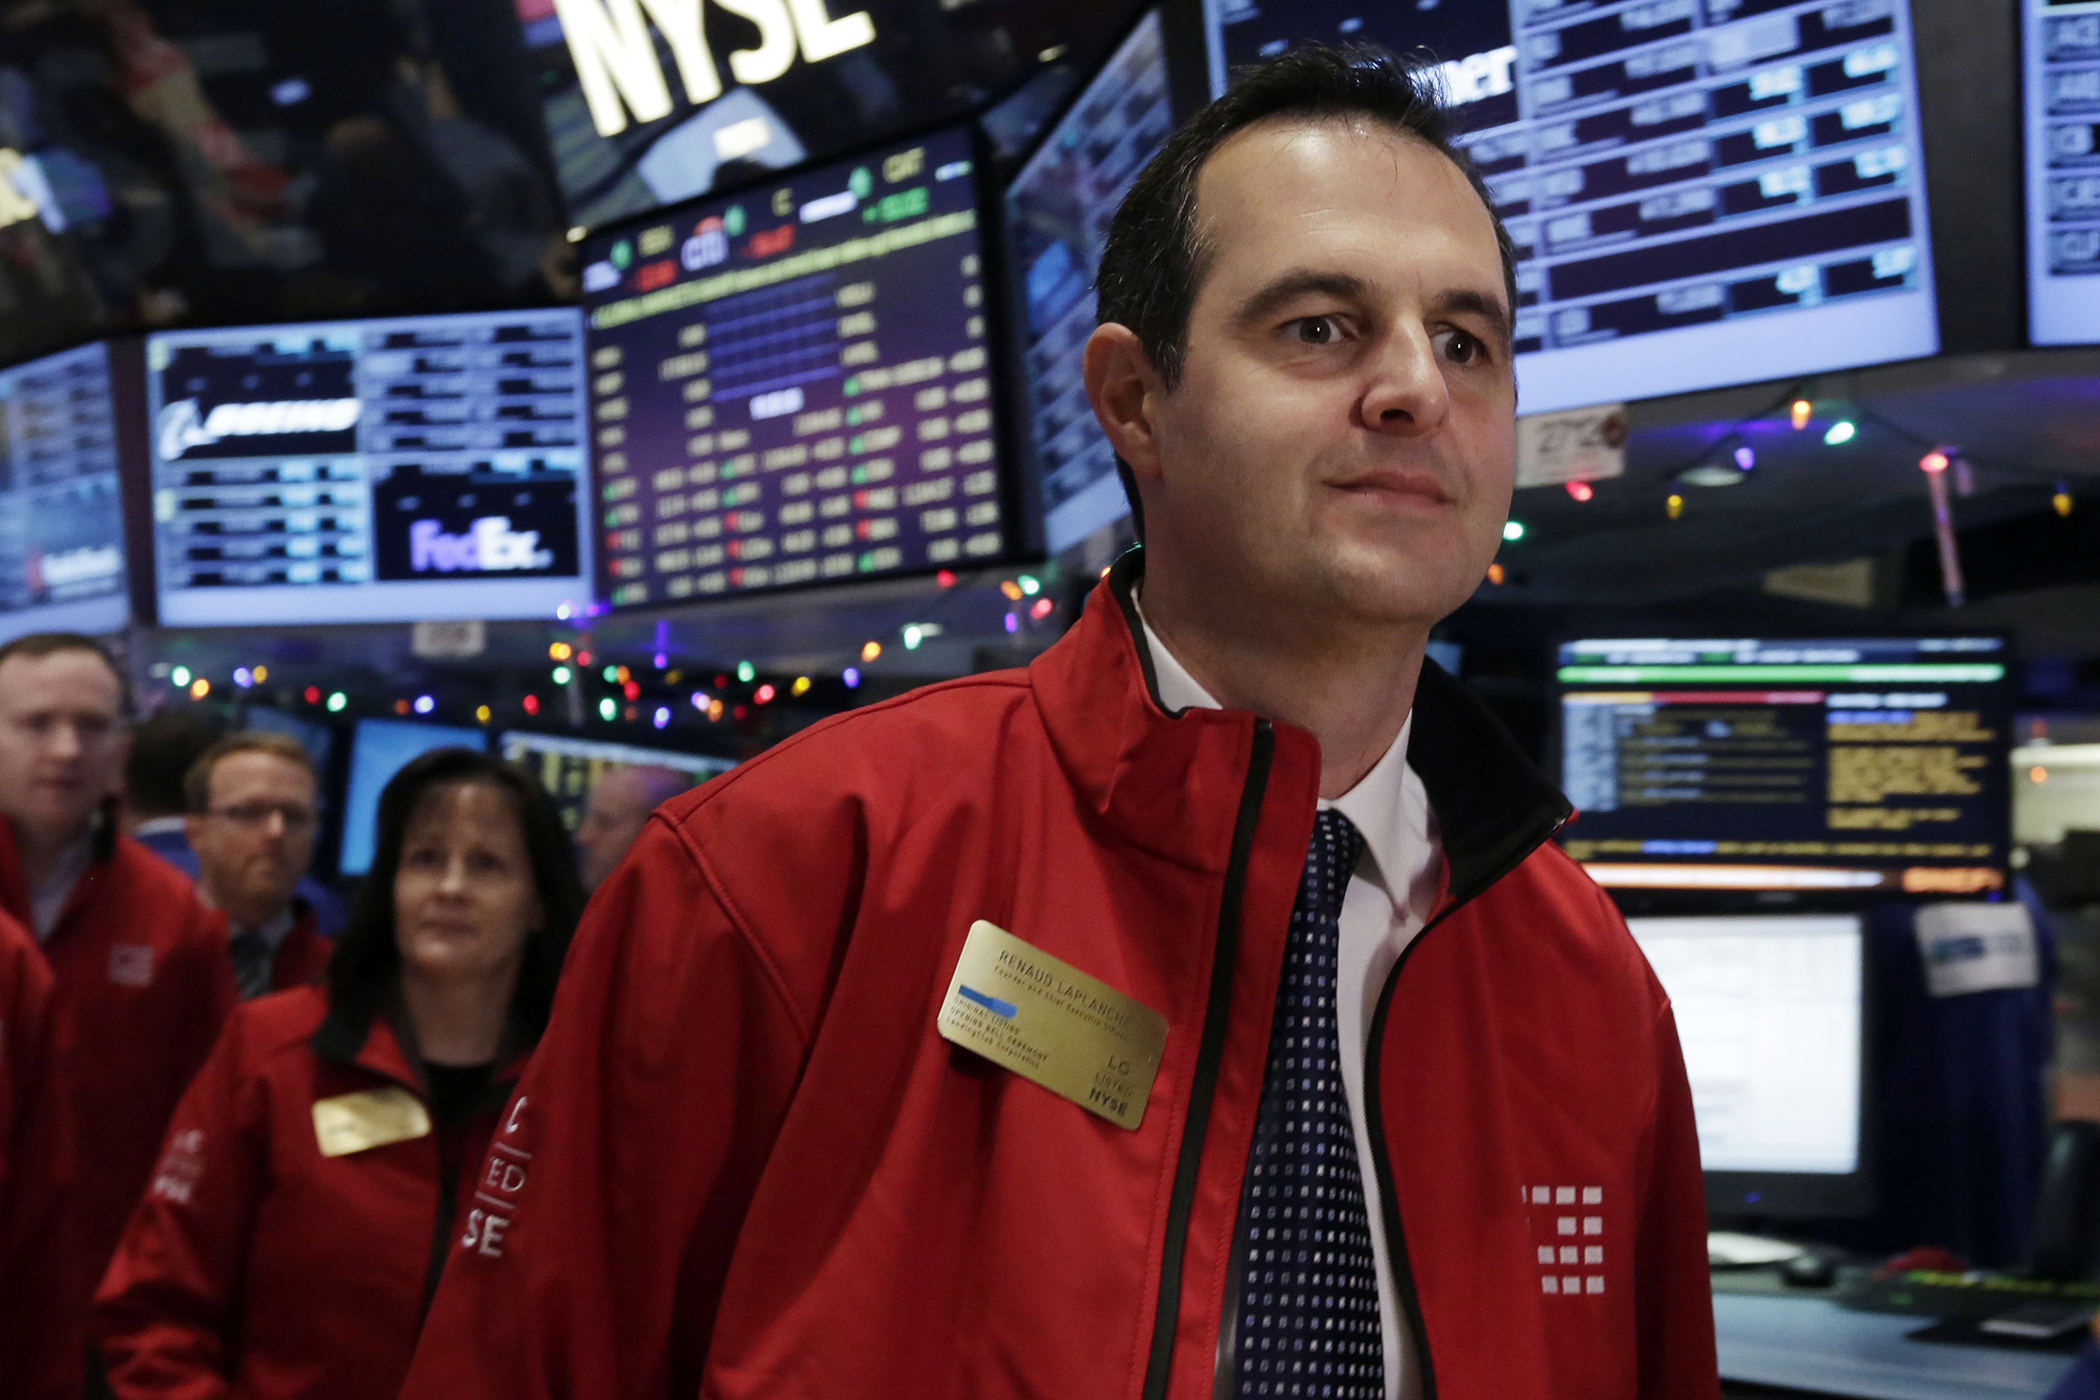 In this Dec. 11, 2014, file photo, Renaud Laplanche, founder & CEO of Lending Club, arrives on the floor of the New York Stock Exchange, prior to his company's IPO. Lending Club Chairman and CEO Laplanche is resigning after the online lender says it conducted an internal probe related to issues with how a loan was sold to an investor.